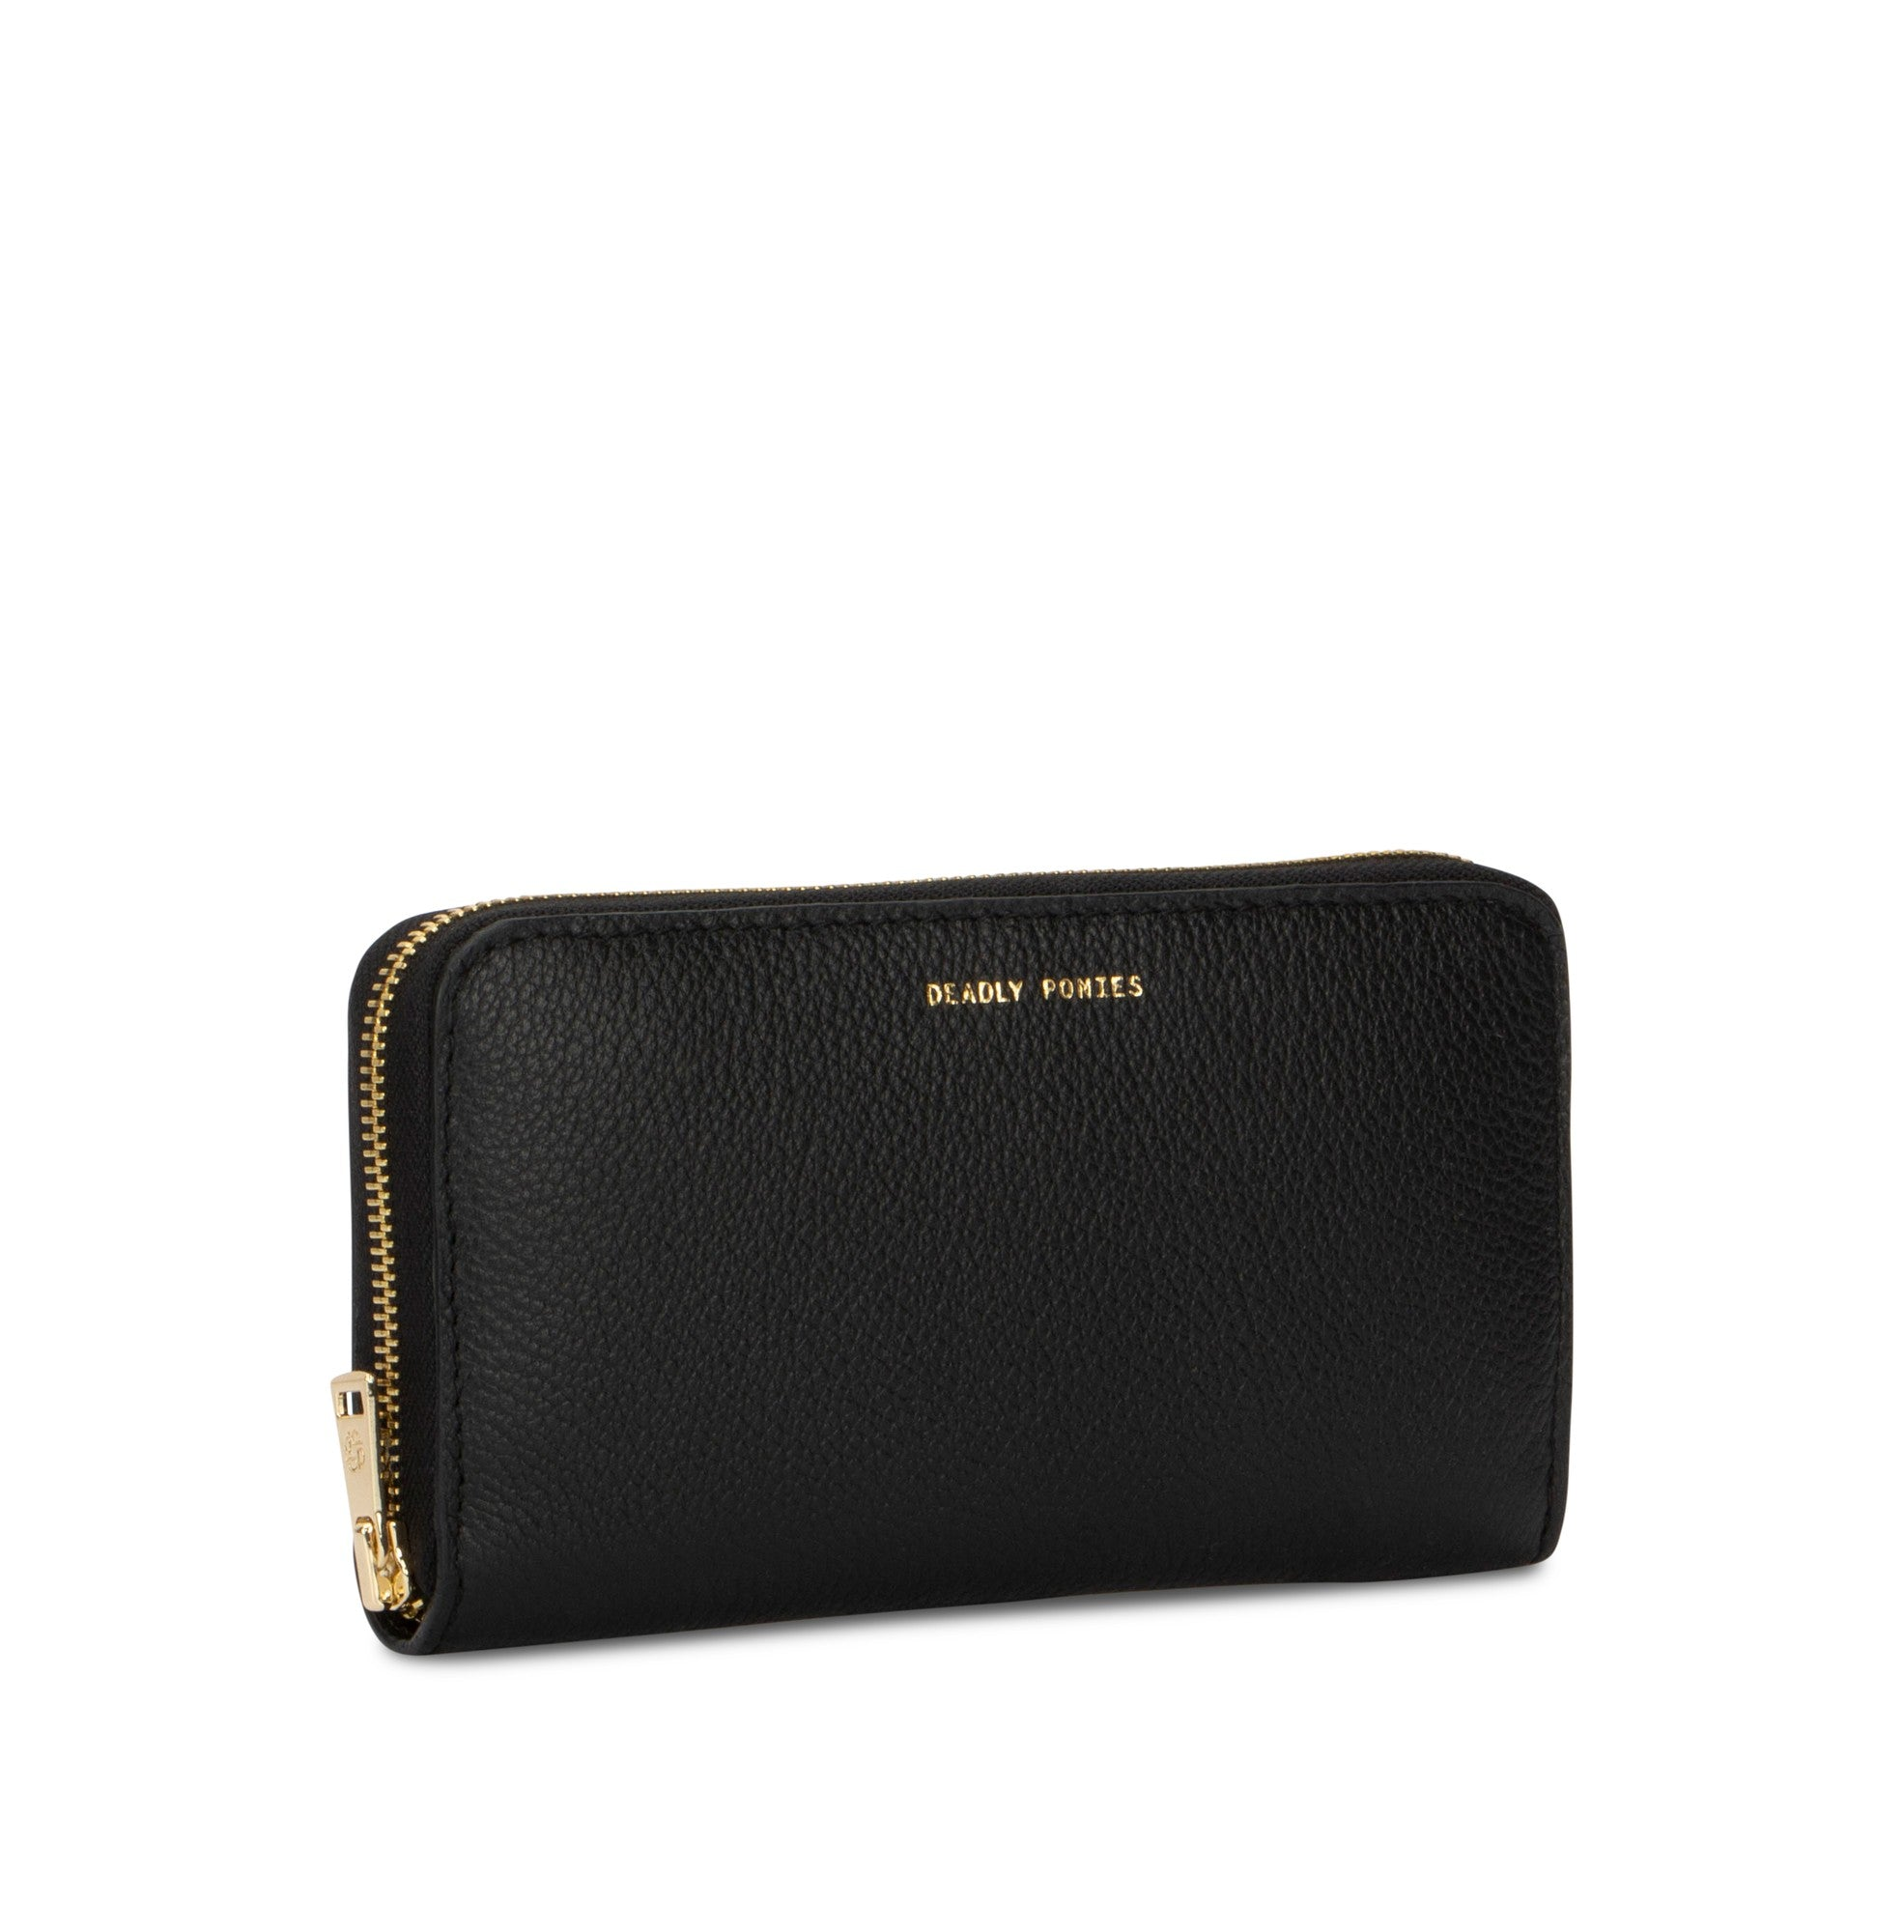 Mr Wallet Black